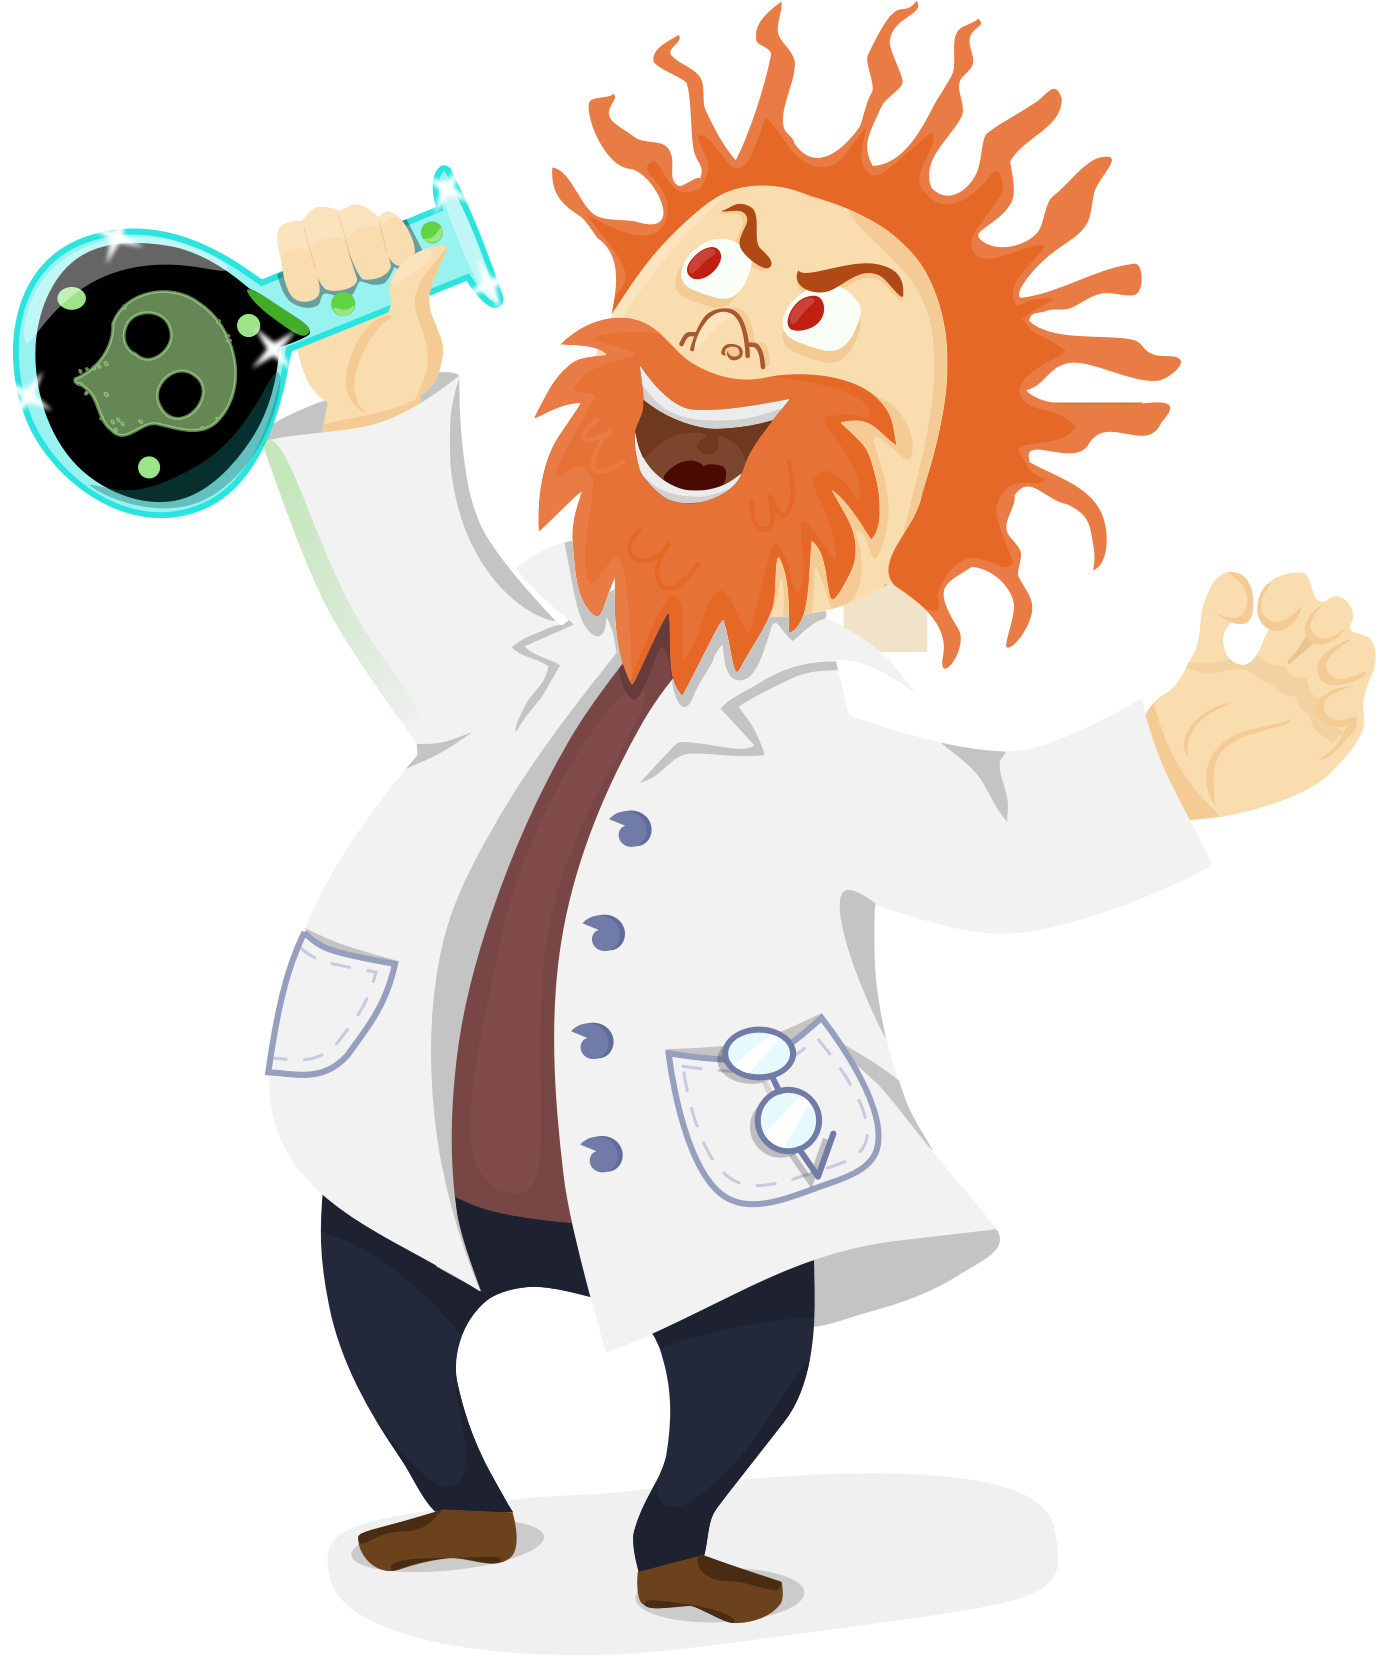 Outer clipart une. Scientist png transparent images